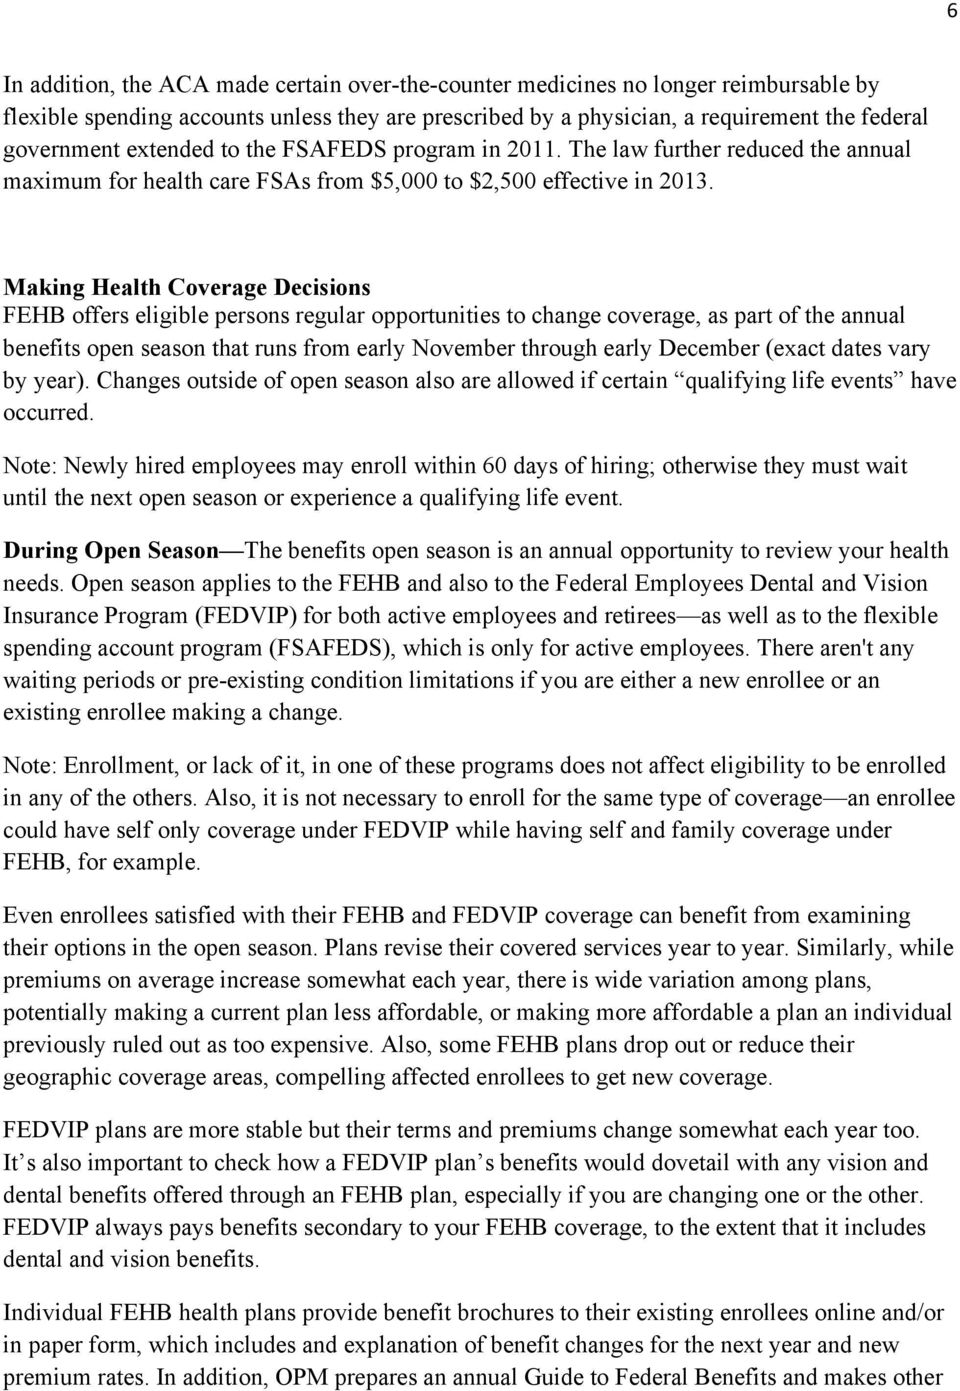 Making Health Coverage Decisions FEHB offers eligible persons regular opportunities to change coverage, as part of the annual benefits open season that runs from early November through early December